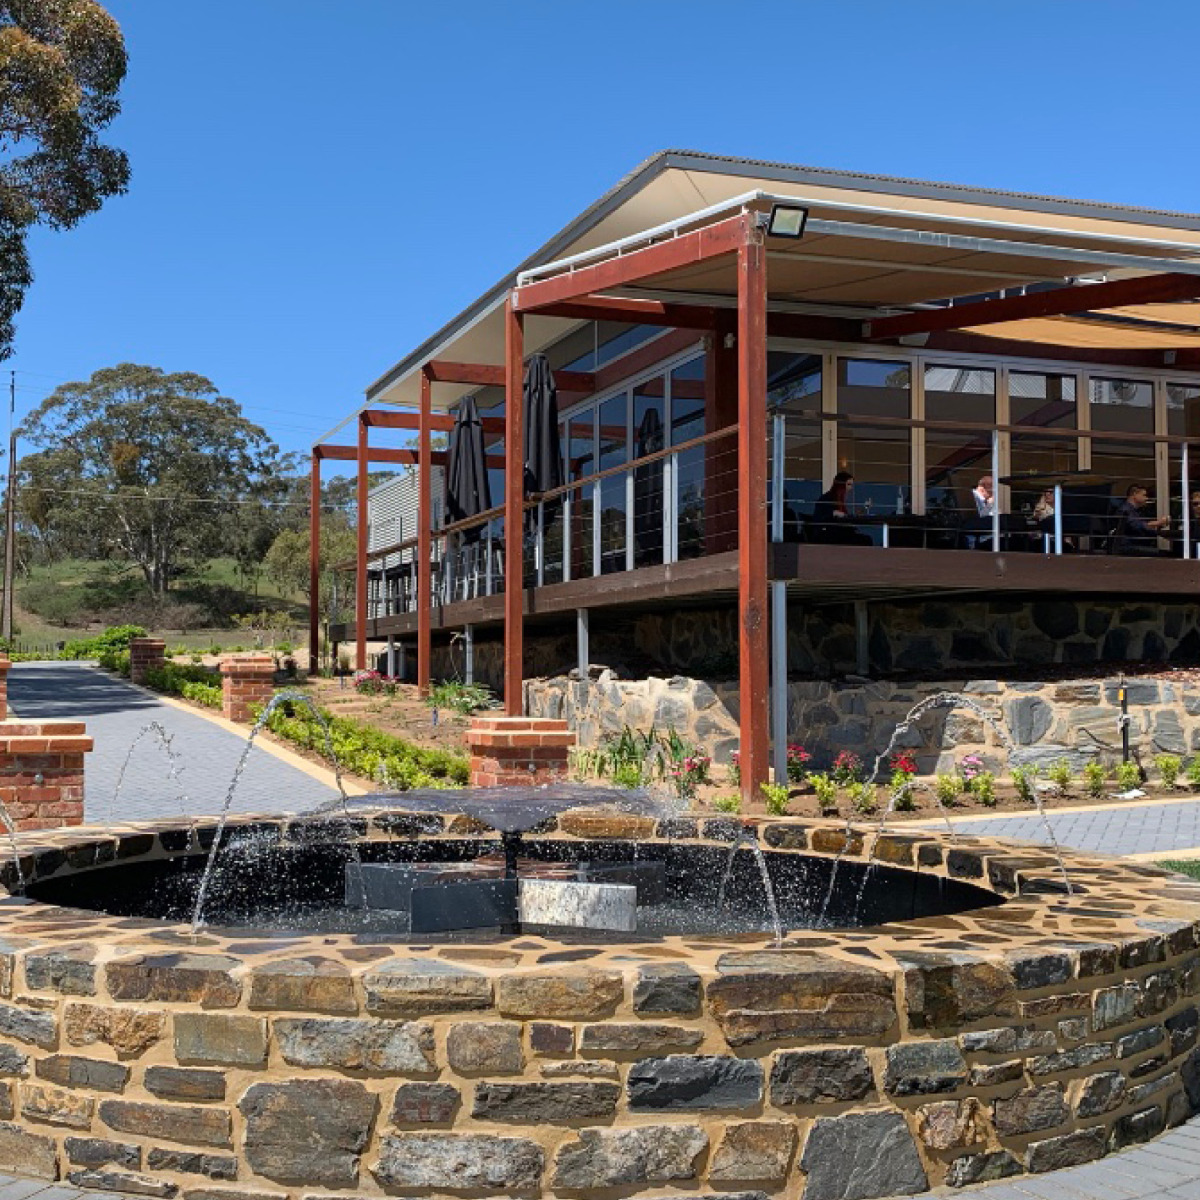 BAROSSA VALLEY CELLAR DOOR